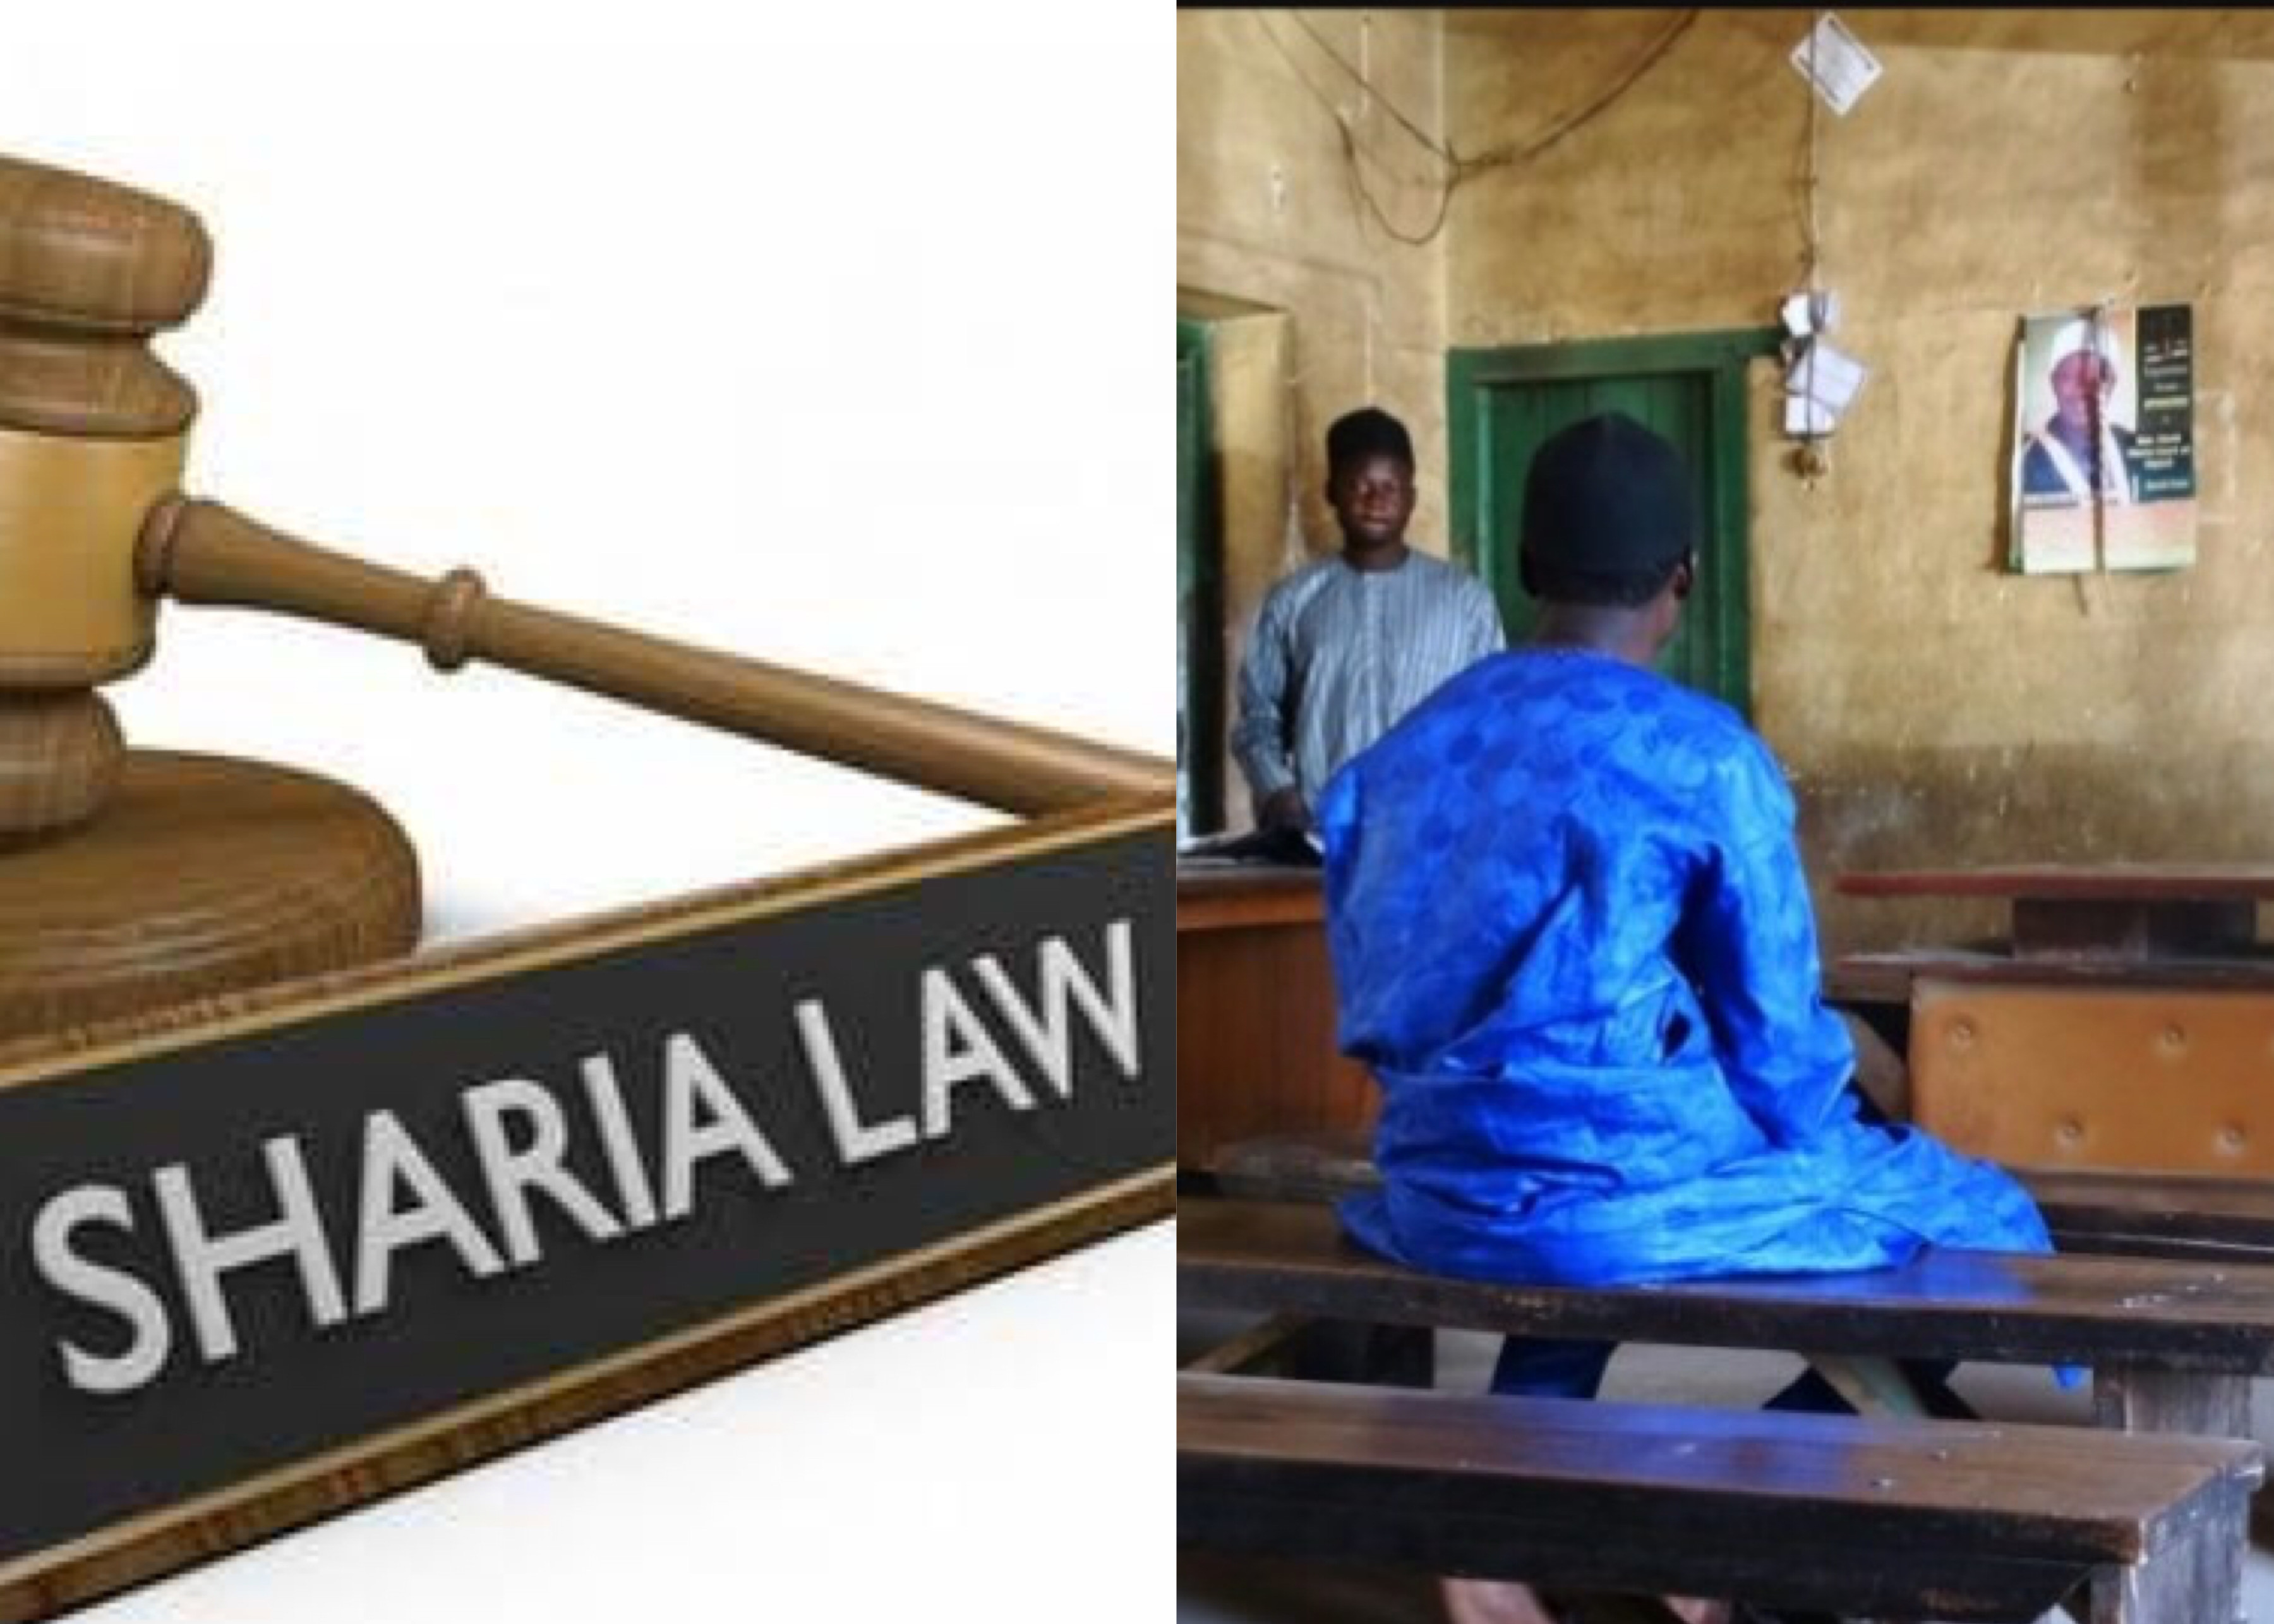 UNICEF reacts as Kano court sentences 13-year-old boy to 10 years imprisonment for blasphemy lindaikejisblog